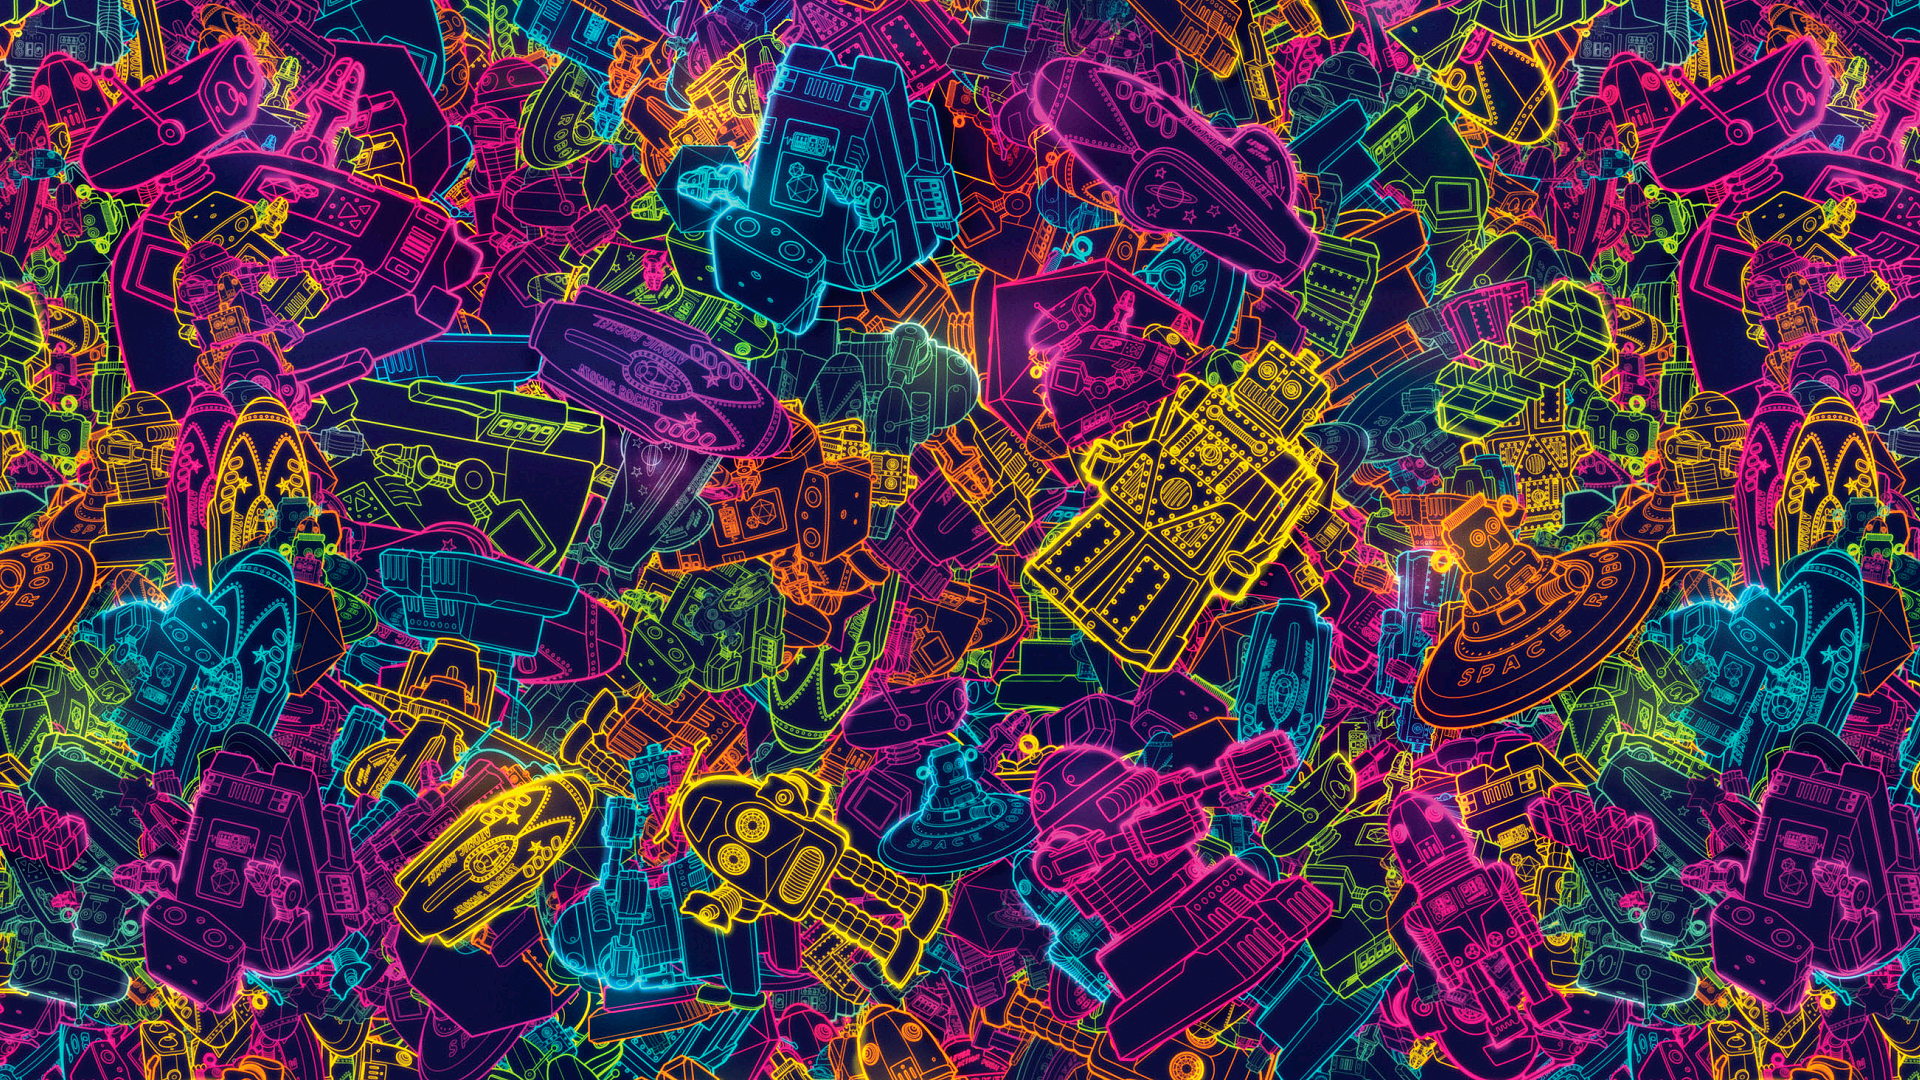 Hd 4k 80s Abstract Wallpaper Ultra